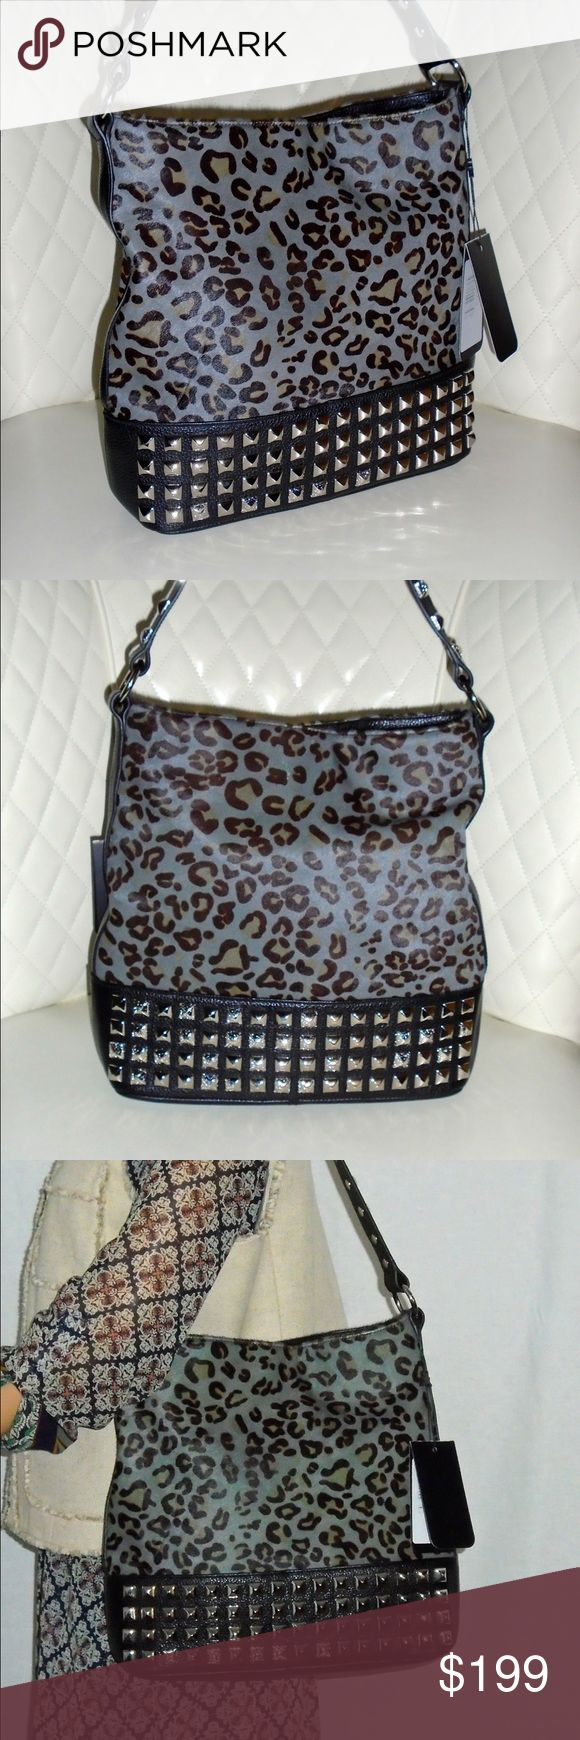 "BODHI Black/Gray Cheetah Print Studded Hobo Bag NWT BODHI Black/Gray Cheetah Print Calf Hair Studded Hobo Bag     100% Authentic Guaranteed!     STYLE #: B0778560AGBK   MSRP: $798 Before Tax   Brand New With Tags and Original Dust Bag    11"" L 12"" H x 4"" W   Single Handle w/11"" Strap Drop     Black/Gray Cheetah Print Calf Hair   Black Pebbled Leather   Silver Tone Hardware and Decorative Studding   Single Magnetic Snap Top Closure   LIned in Bodhi Signature Gray Cotton/Nylon Blend   1 Wall…"